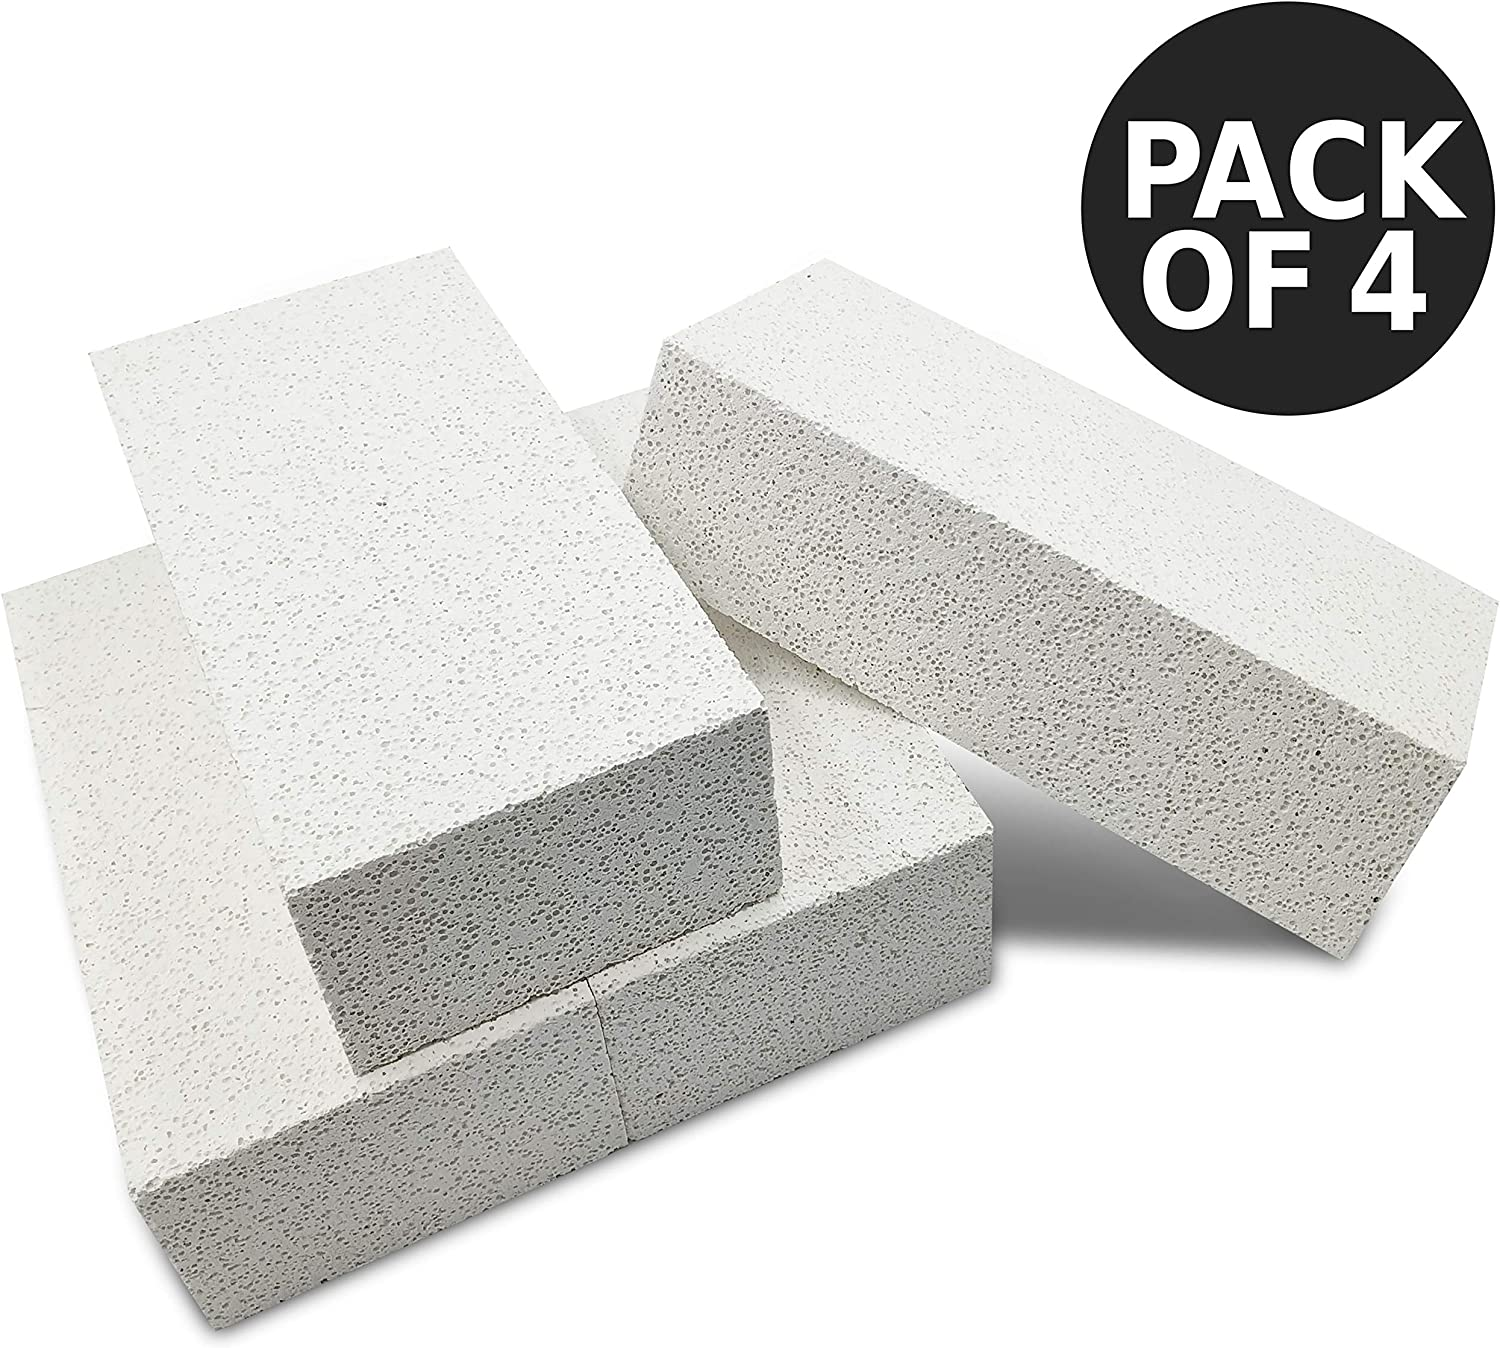 Metal Clay 2700f Fireplace Bricks Pack Of 4 Jewelry Soldering 9x 4 5 X 2 5 Insulating Fire